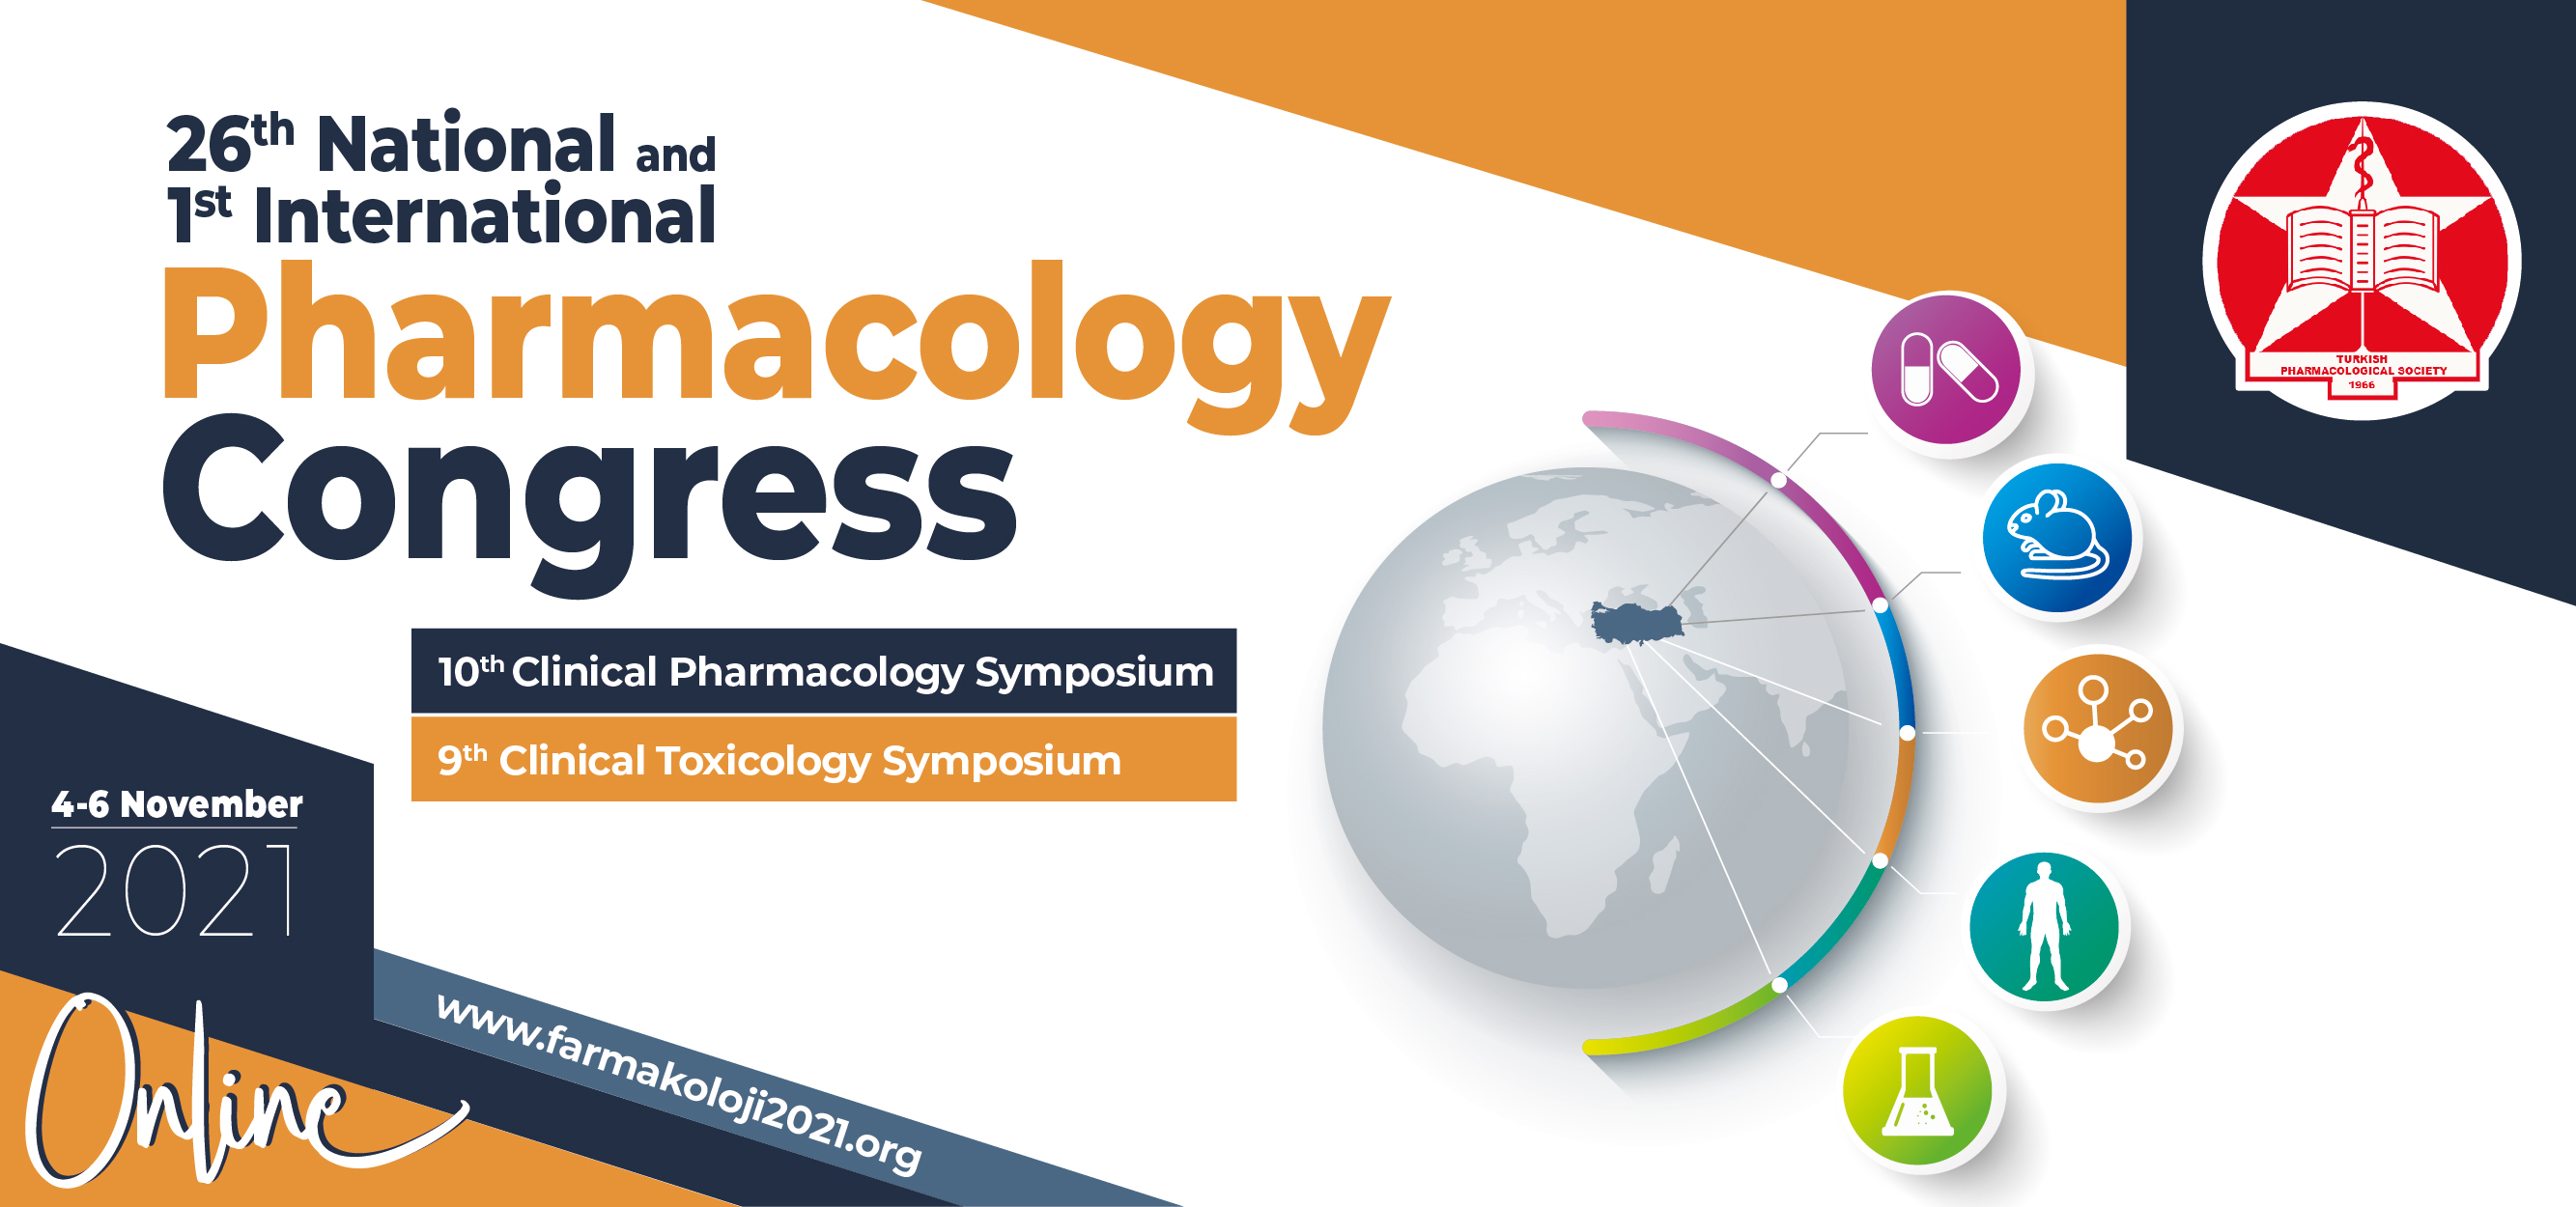 Announcement of the 26th National and 1st International Pharmacology Congress